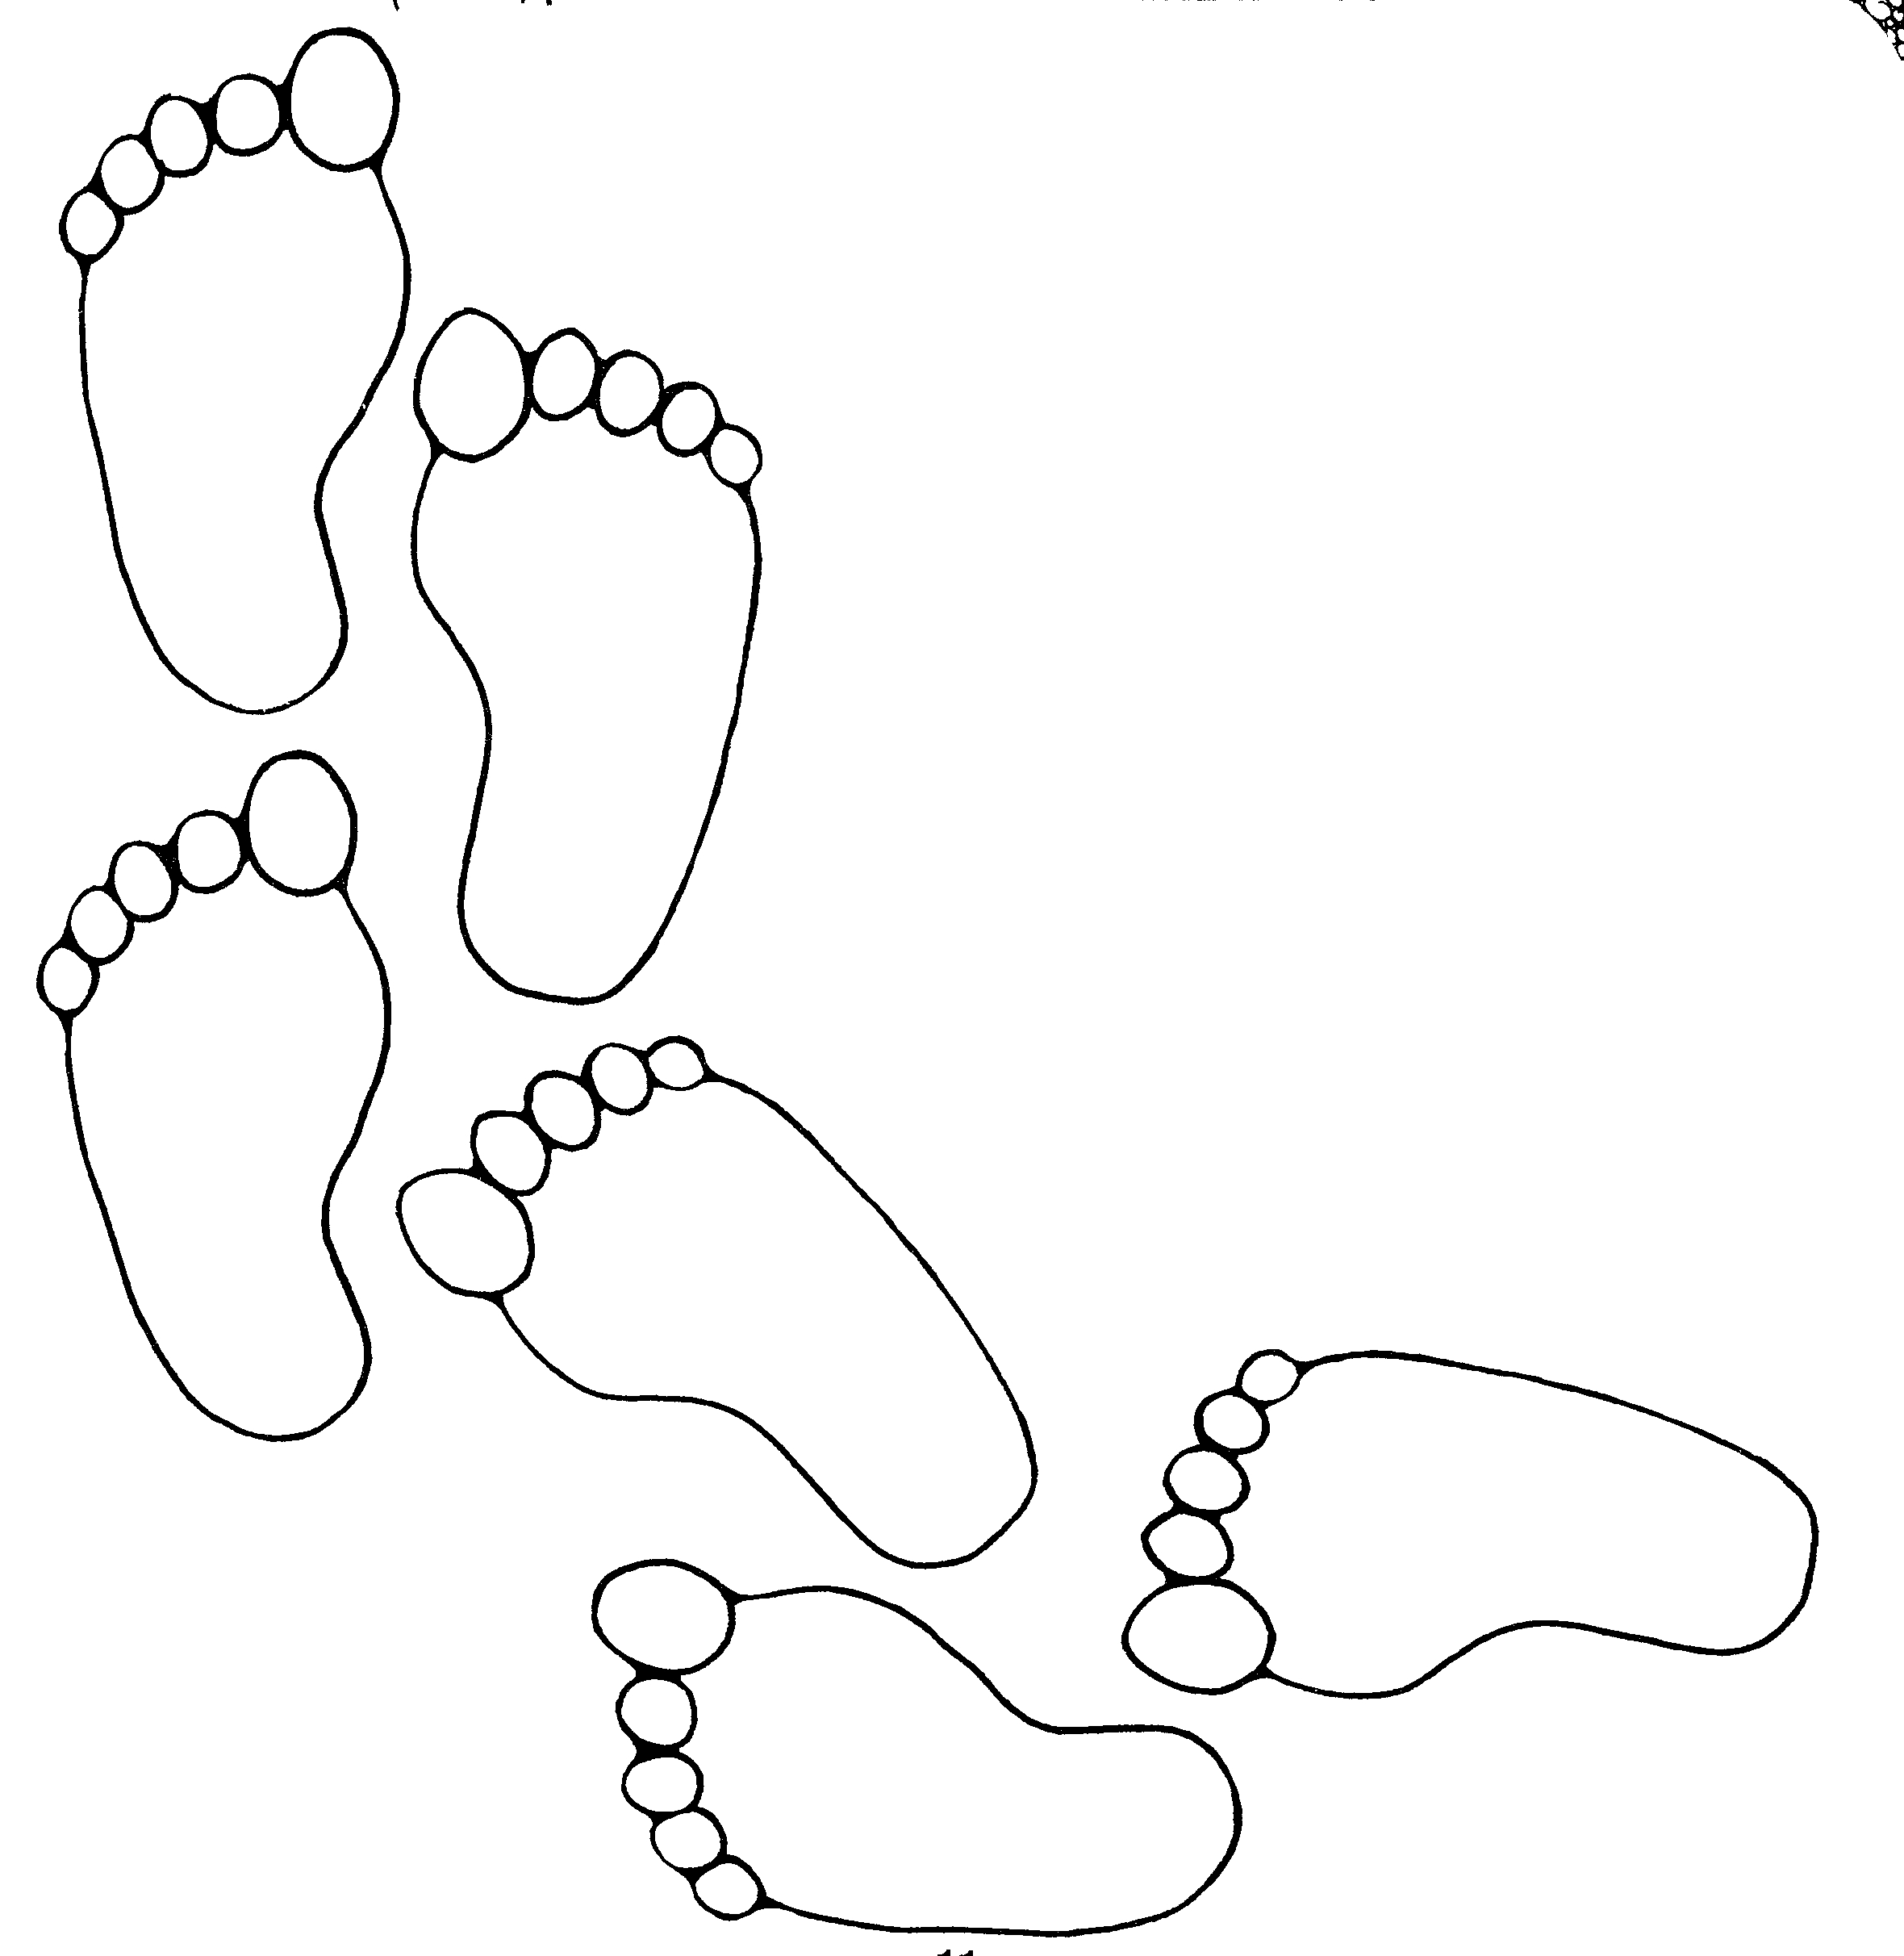 Footprint Pattern Printable